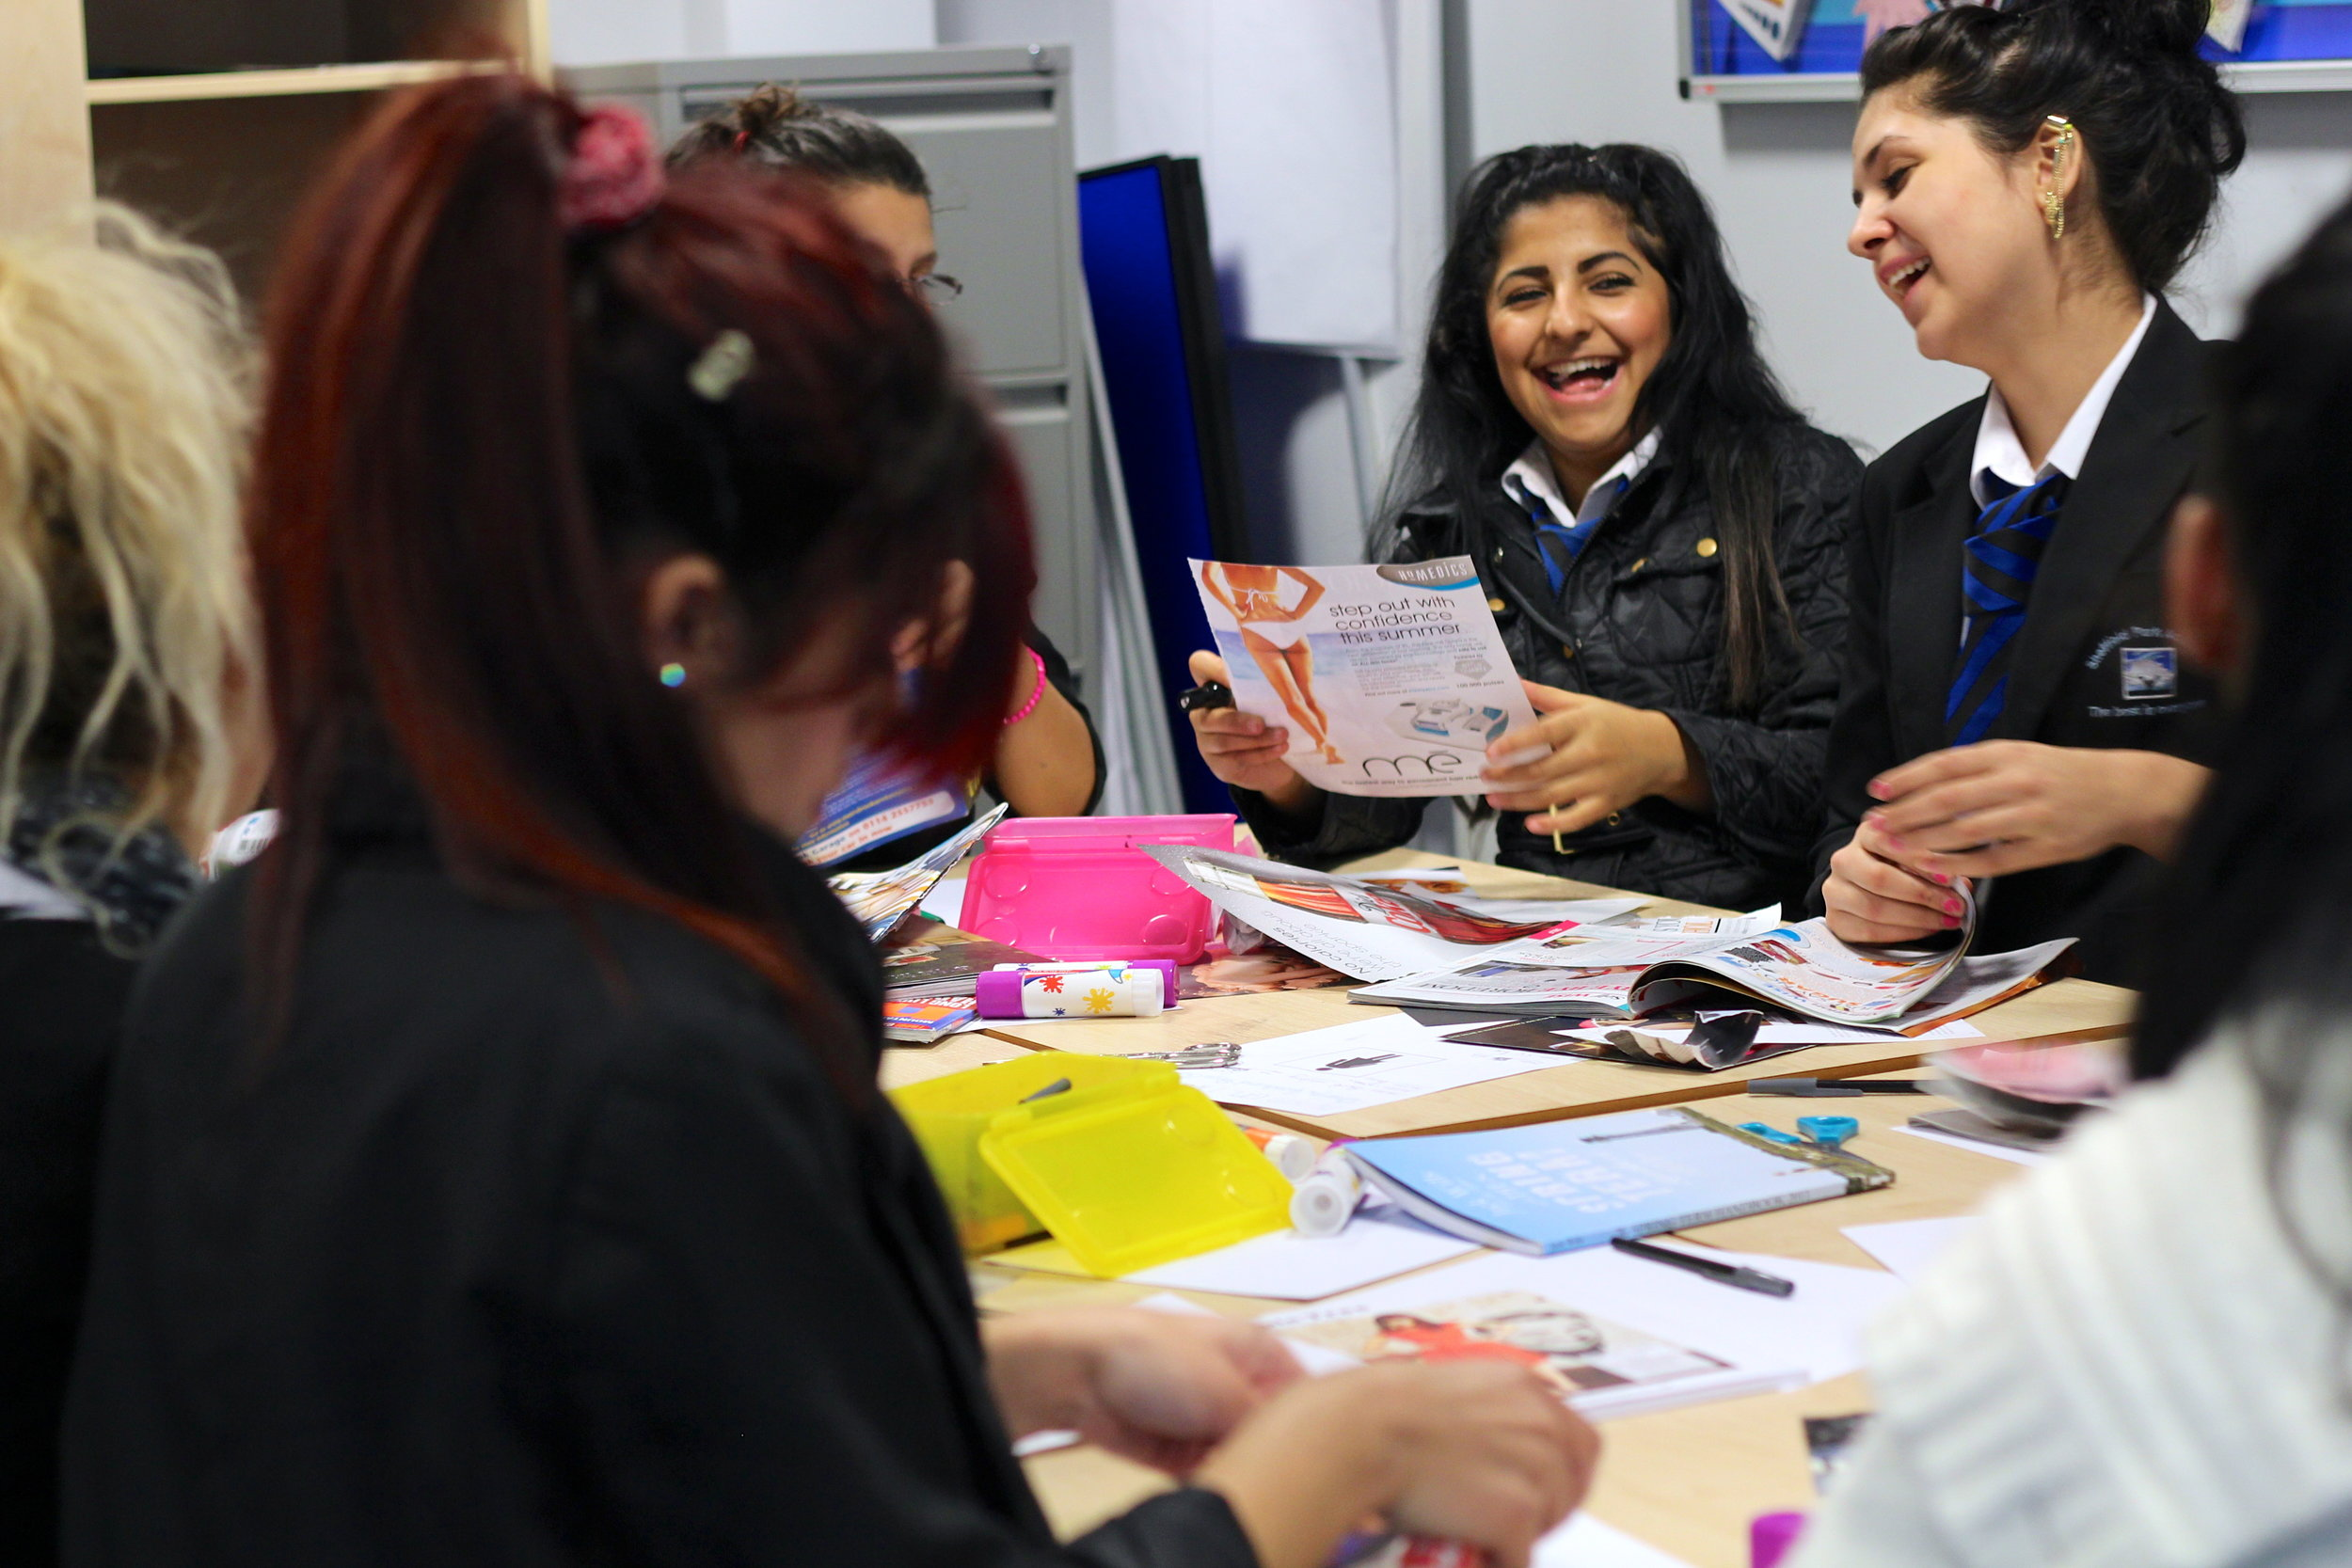 As a self-esteem charity, we're all about showing young people that they are valuable, like gold. -